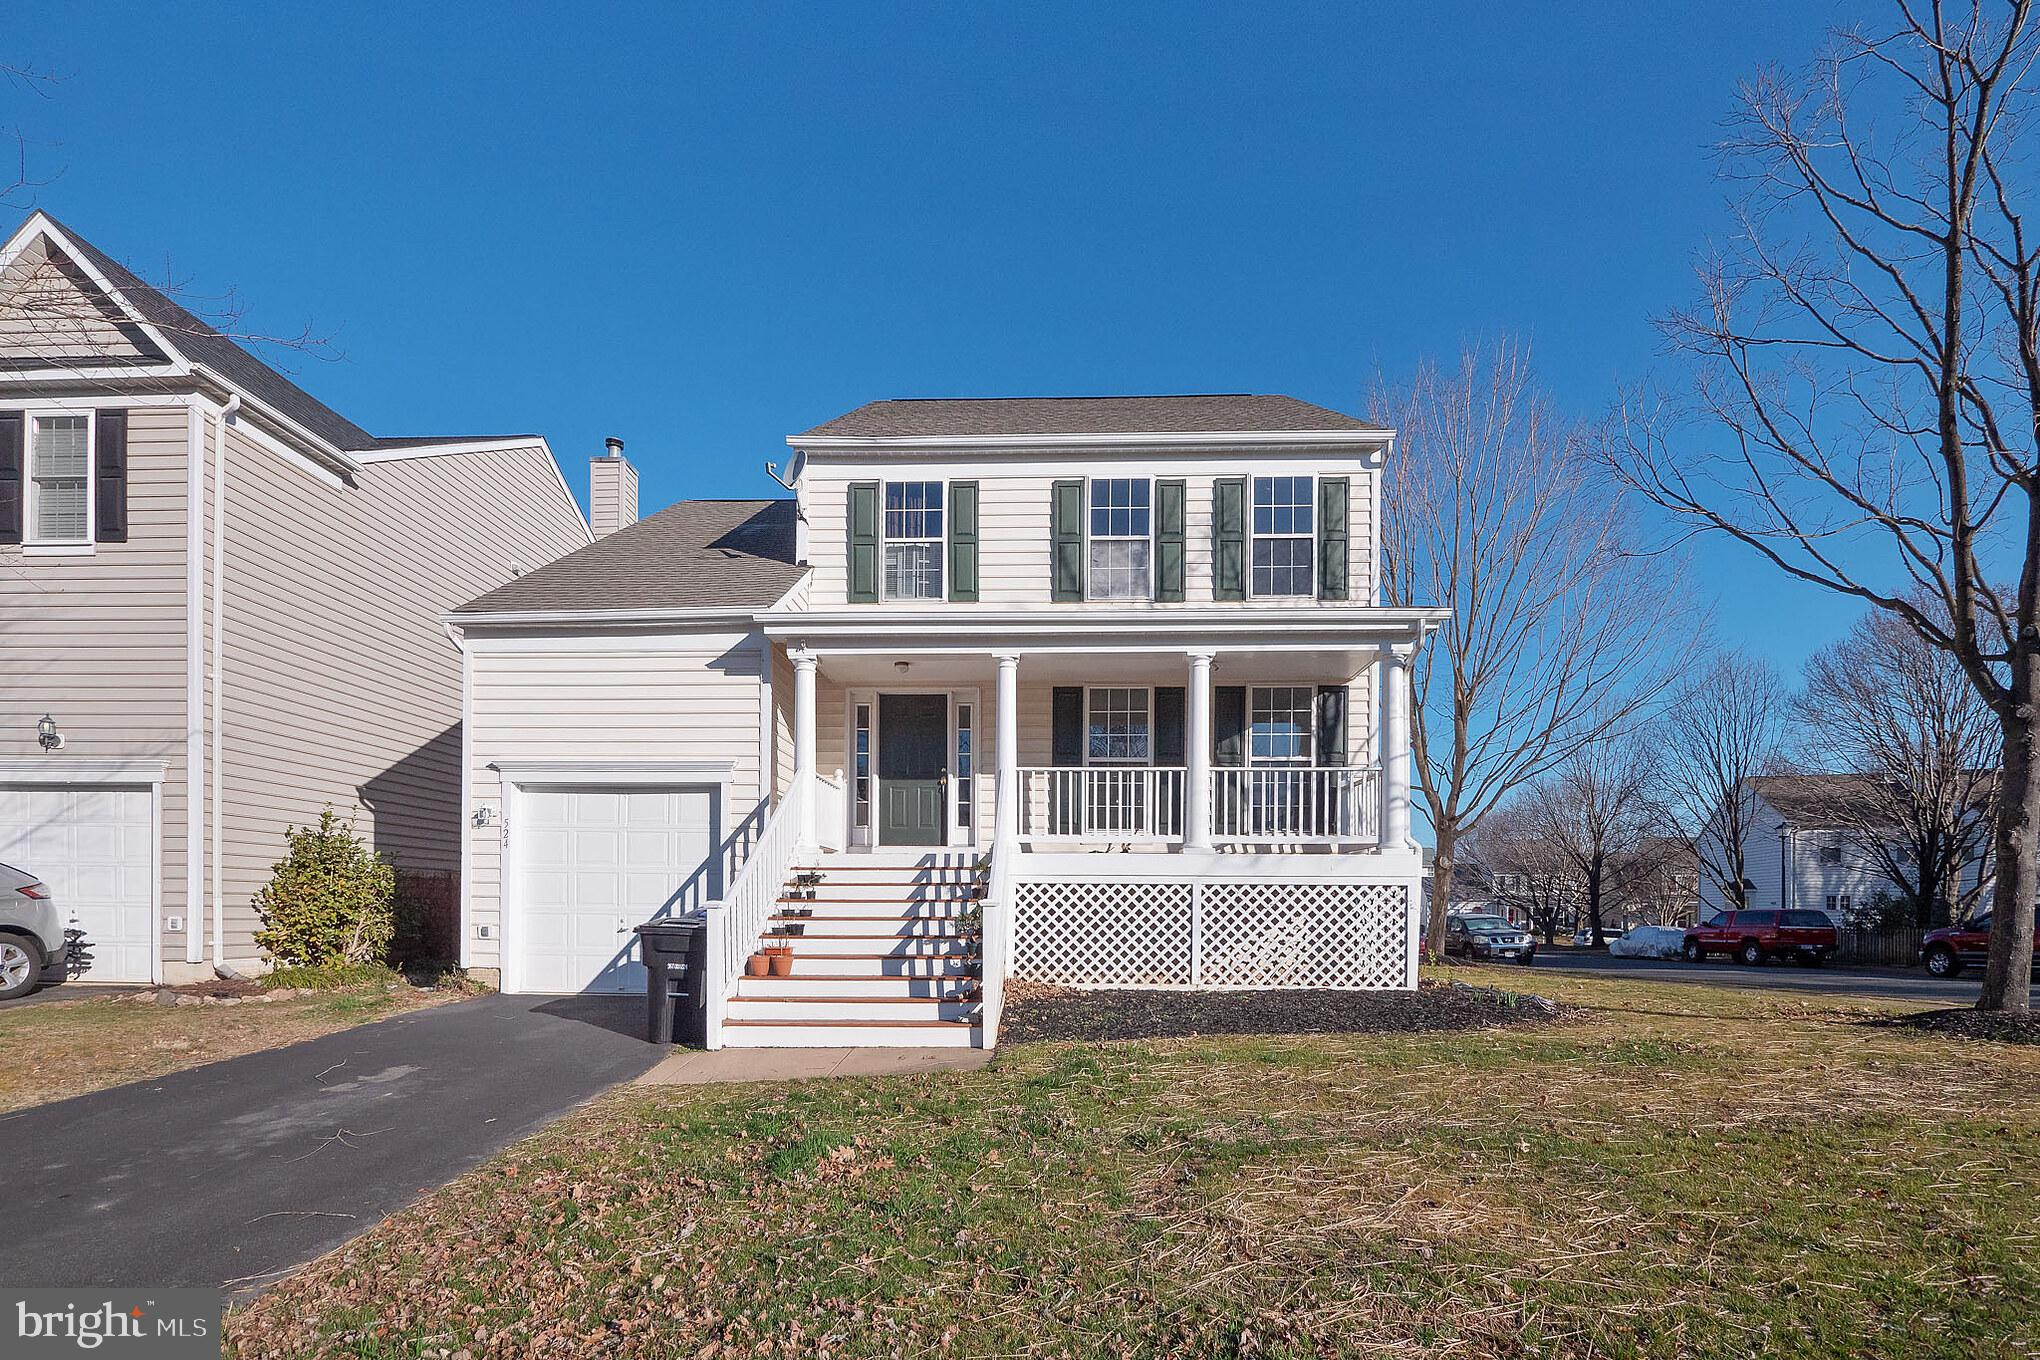 You will love living in the charming town of Leesburg! Come see this tri-level 4BD/2.5BA colonial ho